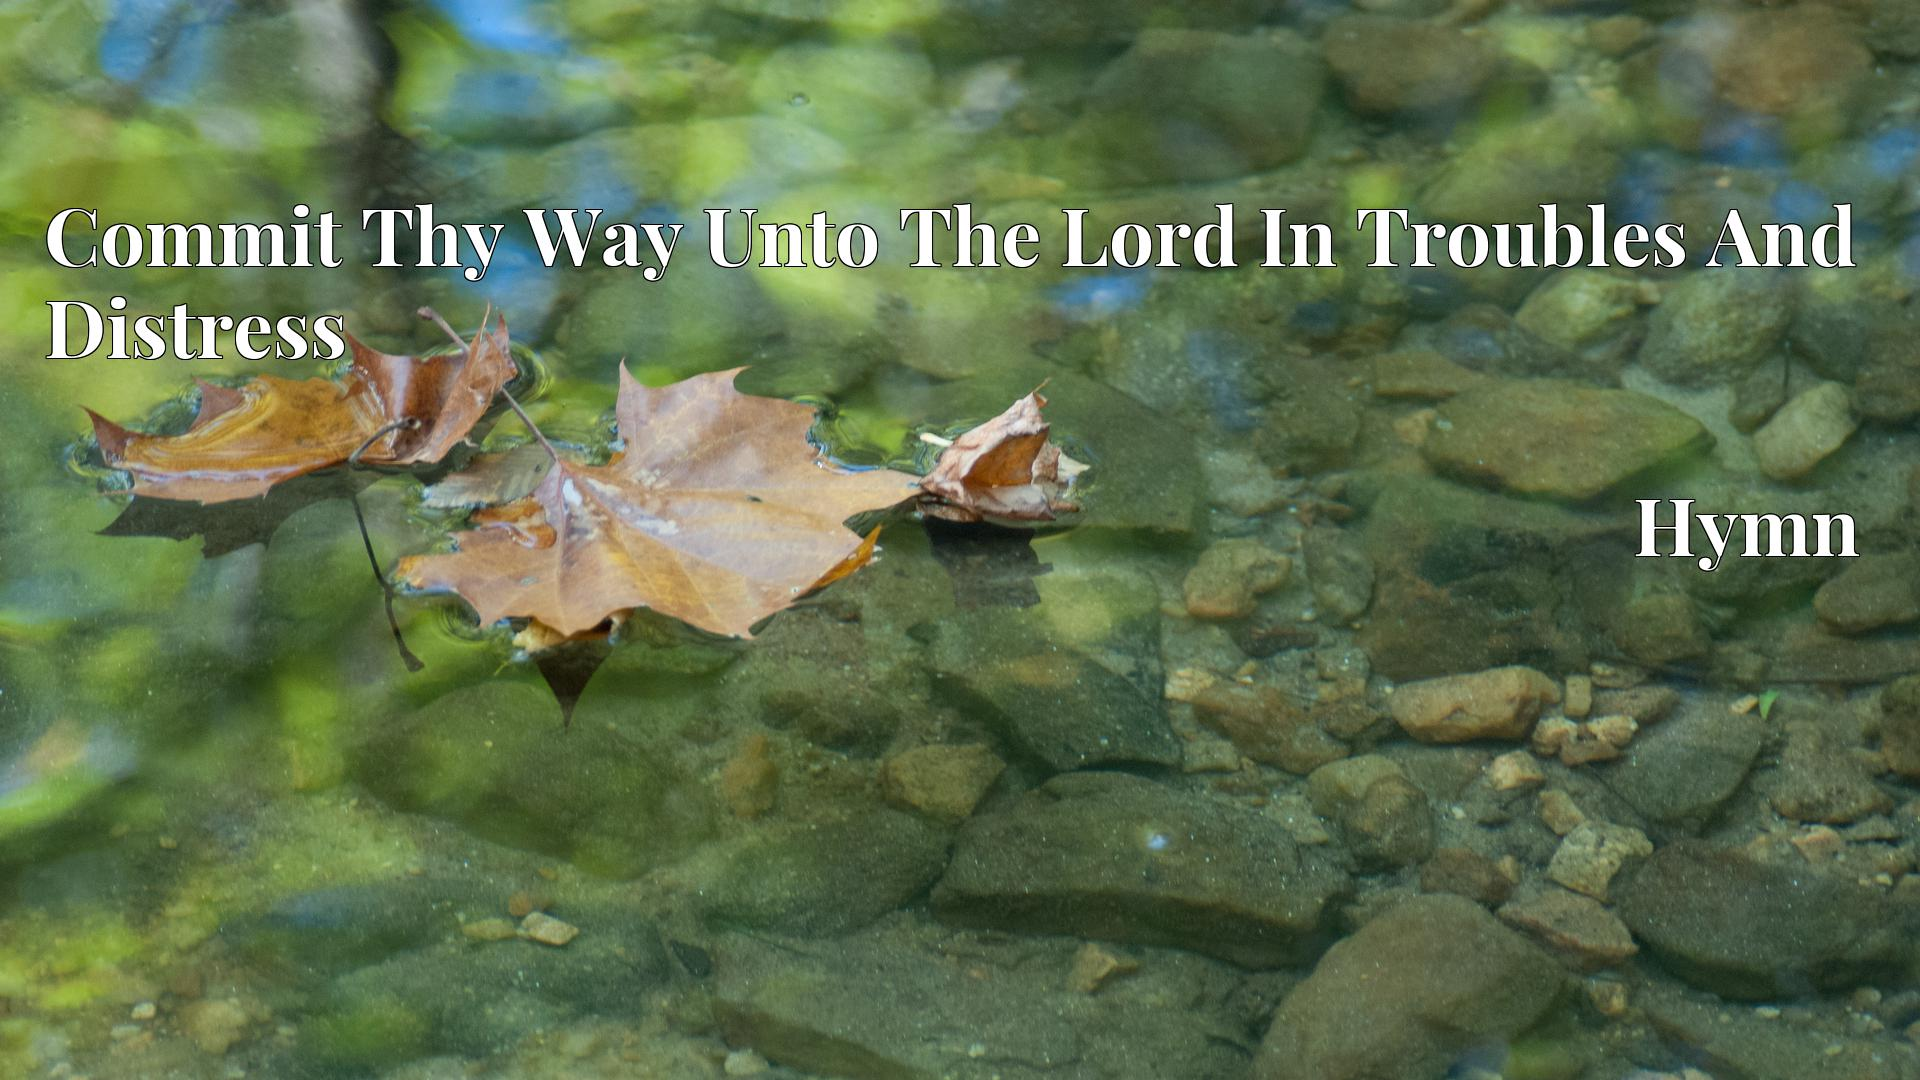 Commit Thy Way Unto The Lord In Troubles And Distress - Hymn